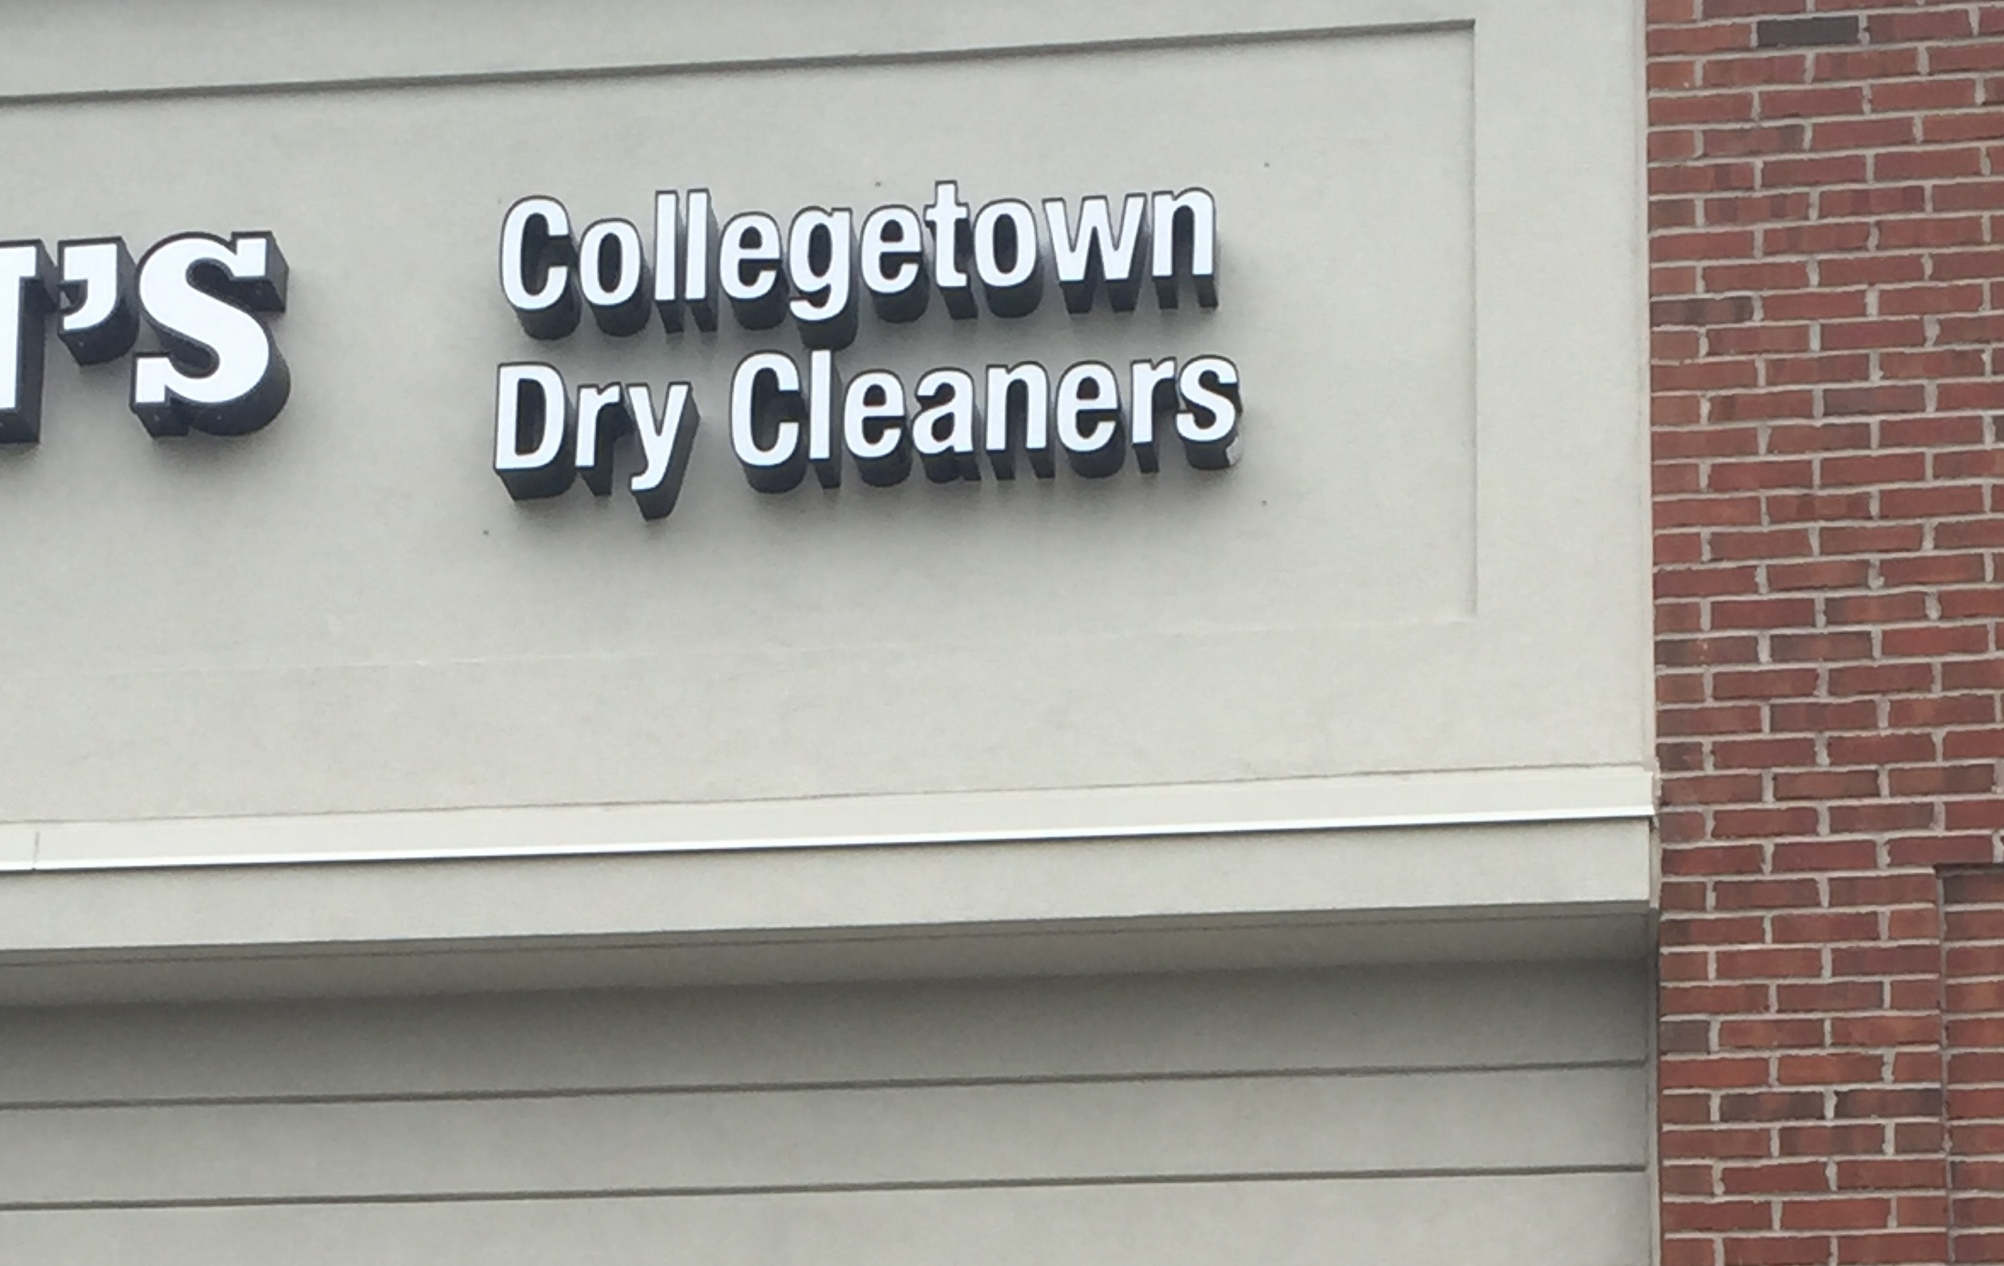 Collegetown Dry Cleaners